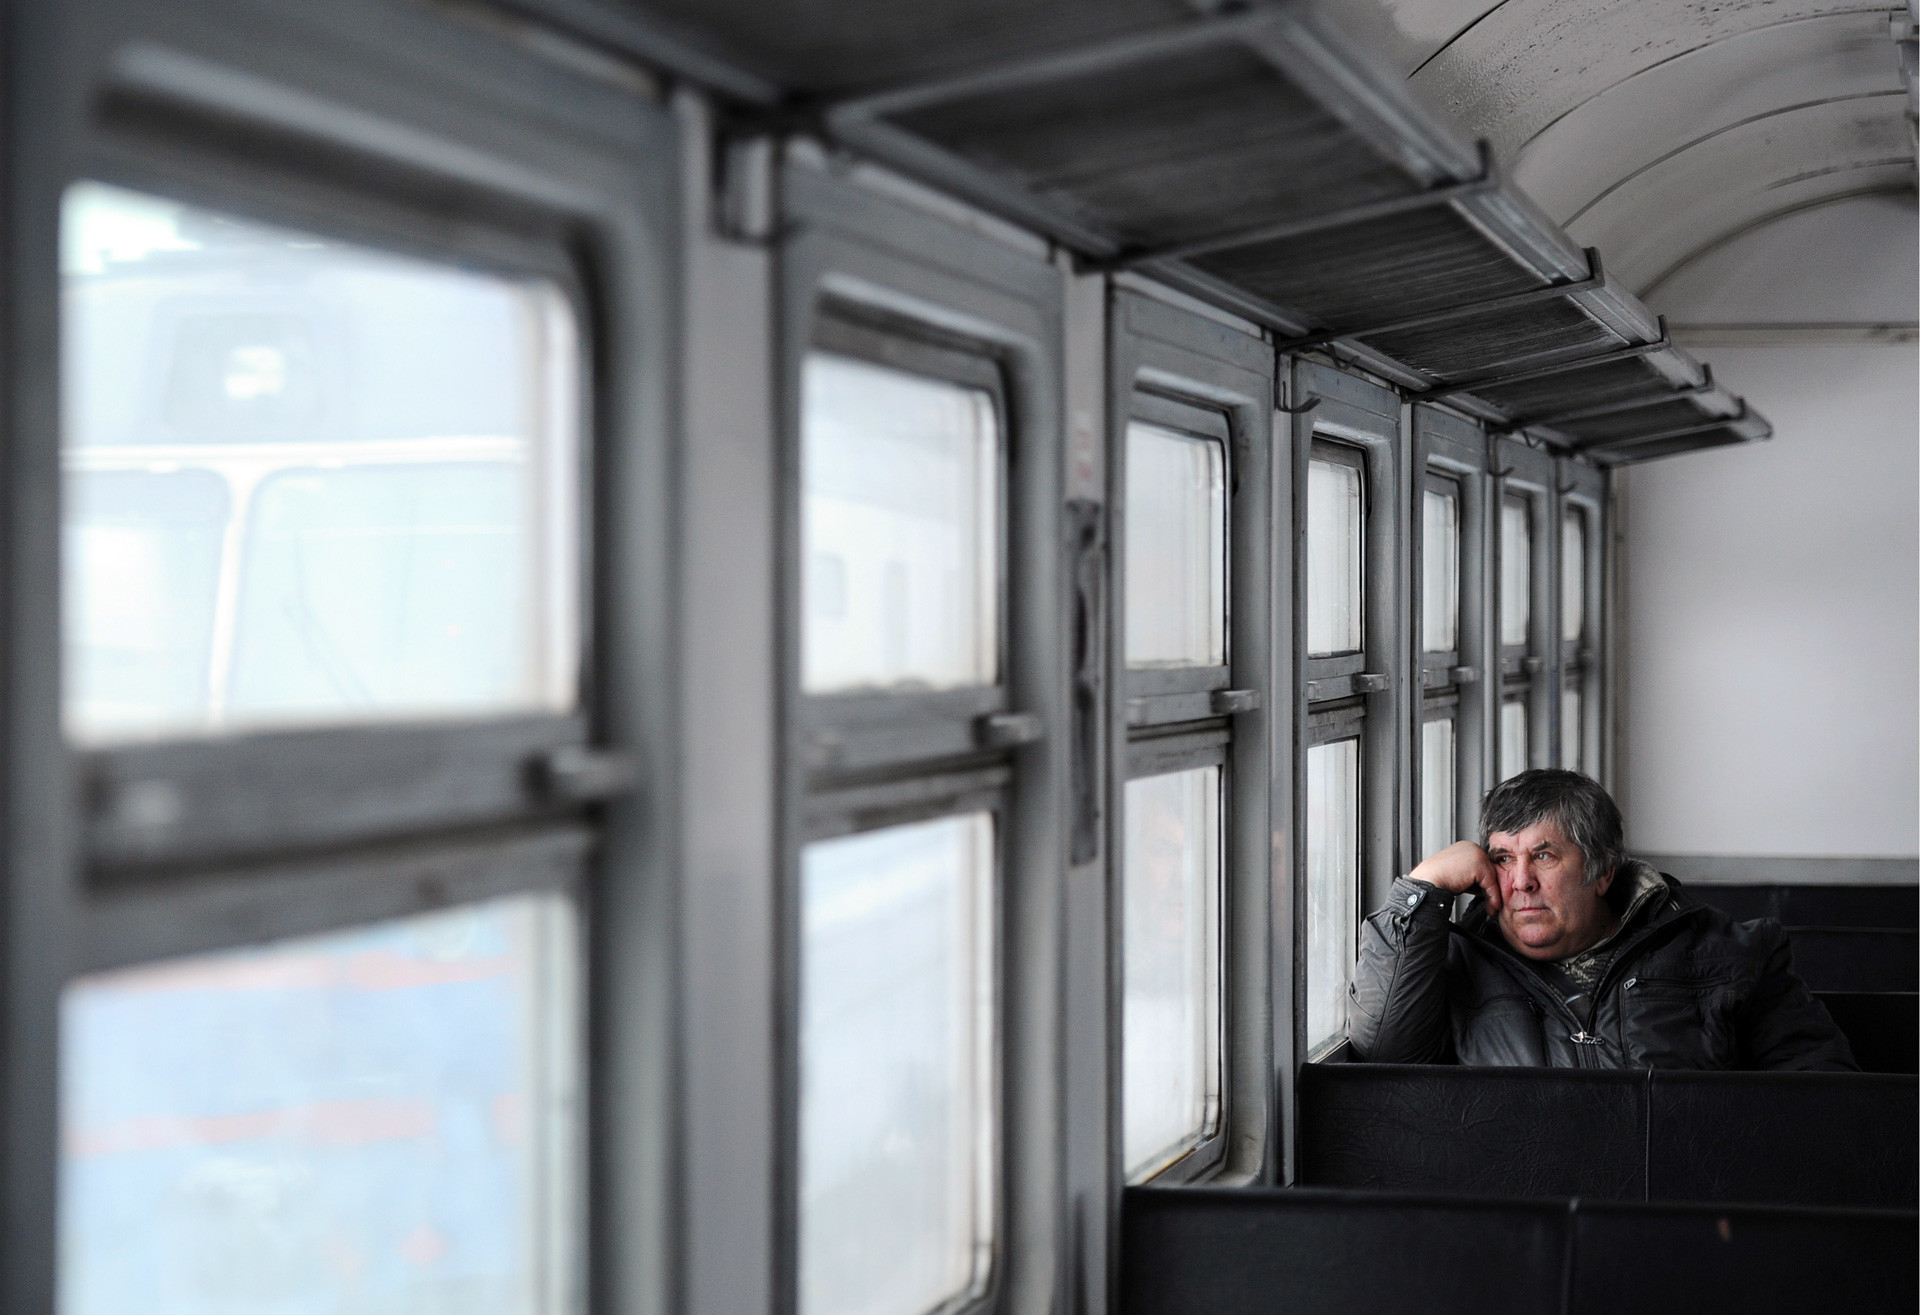 A man looks through the window as he sits in a commuter train.